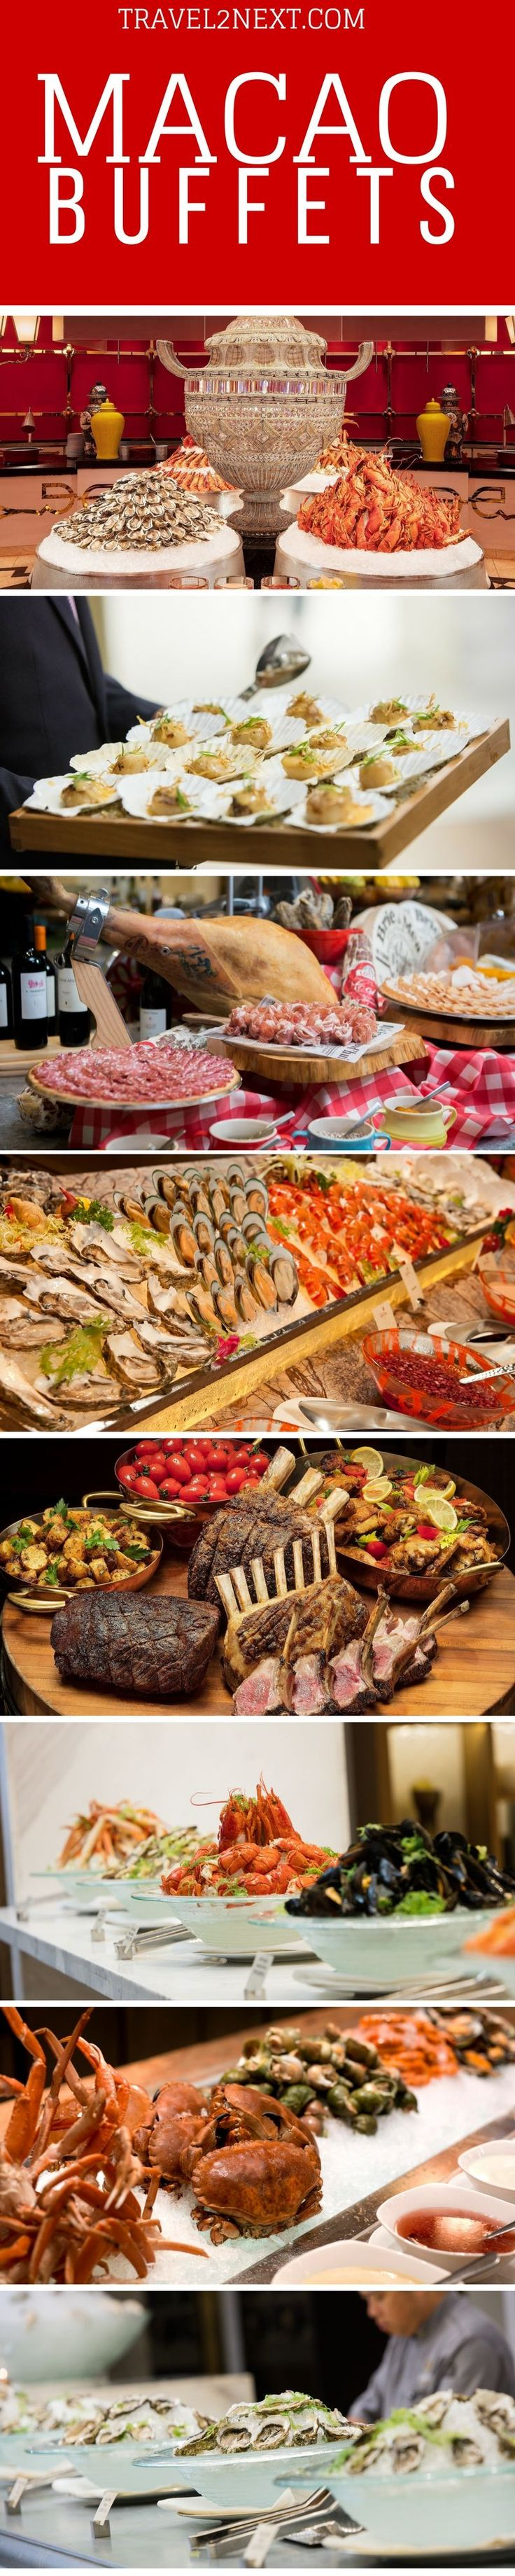 Macao Buffet Bible – How to choose the best buffet in Macau. Macao has a range of dining options to suit all tastes and budgets but if you truly want to treat yourself to a smorgasbord of delights, head for one of Macao's buffet restaurants.